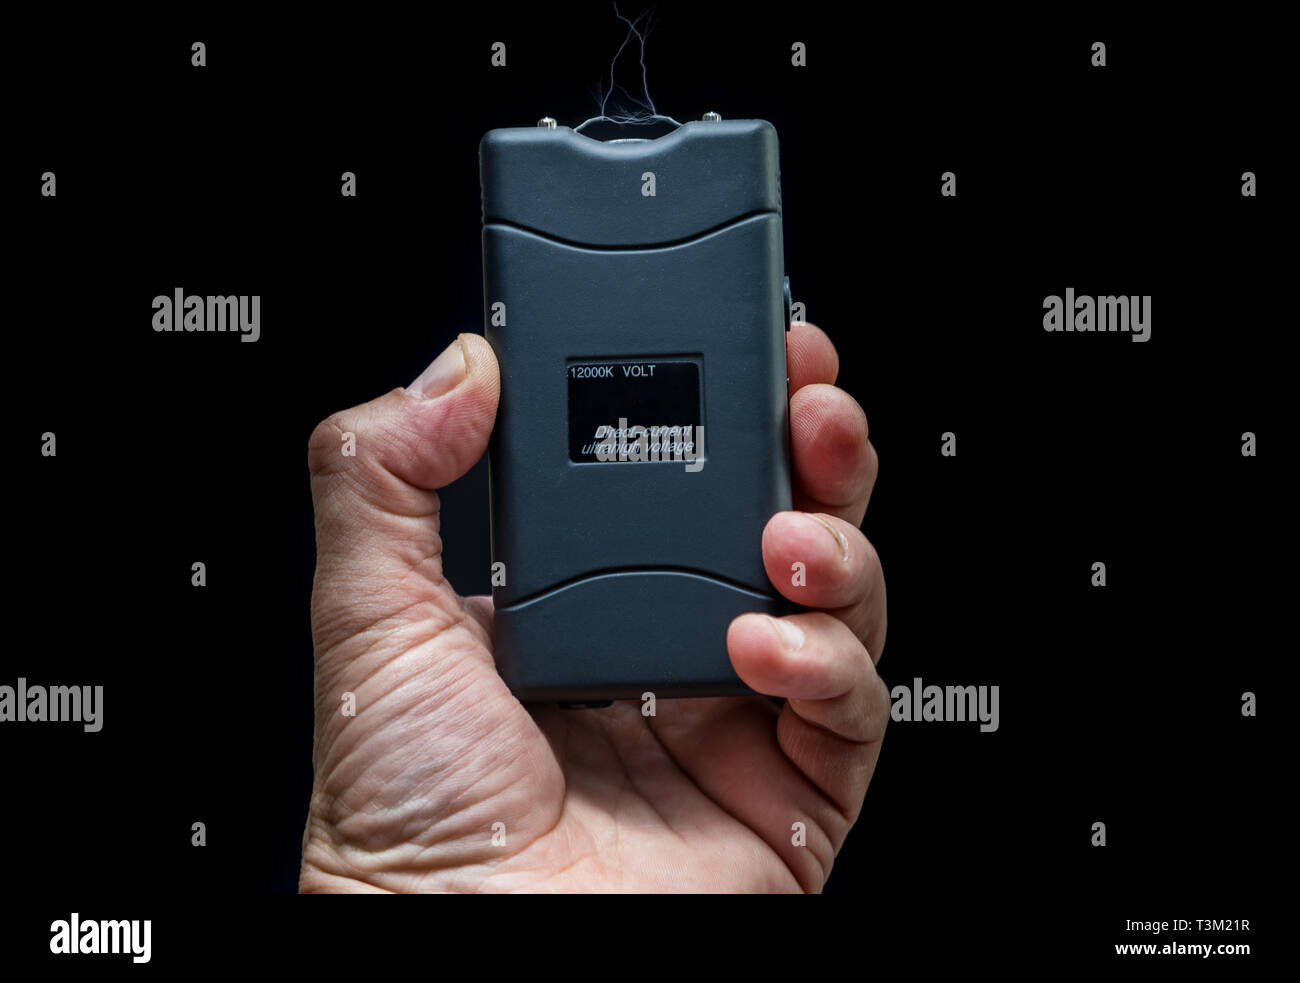 Hand holds a stun gun in front of black background - Stock Image